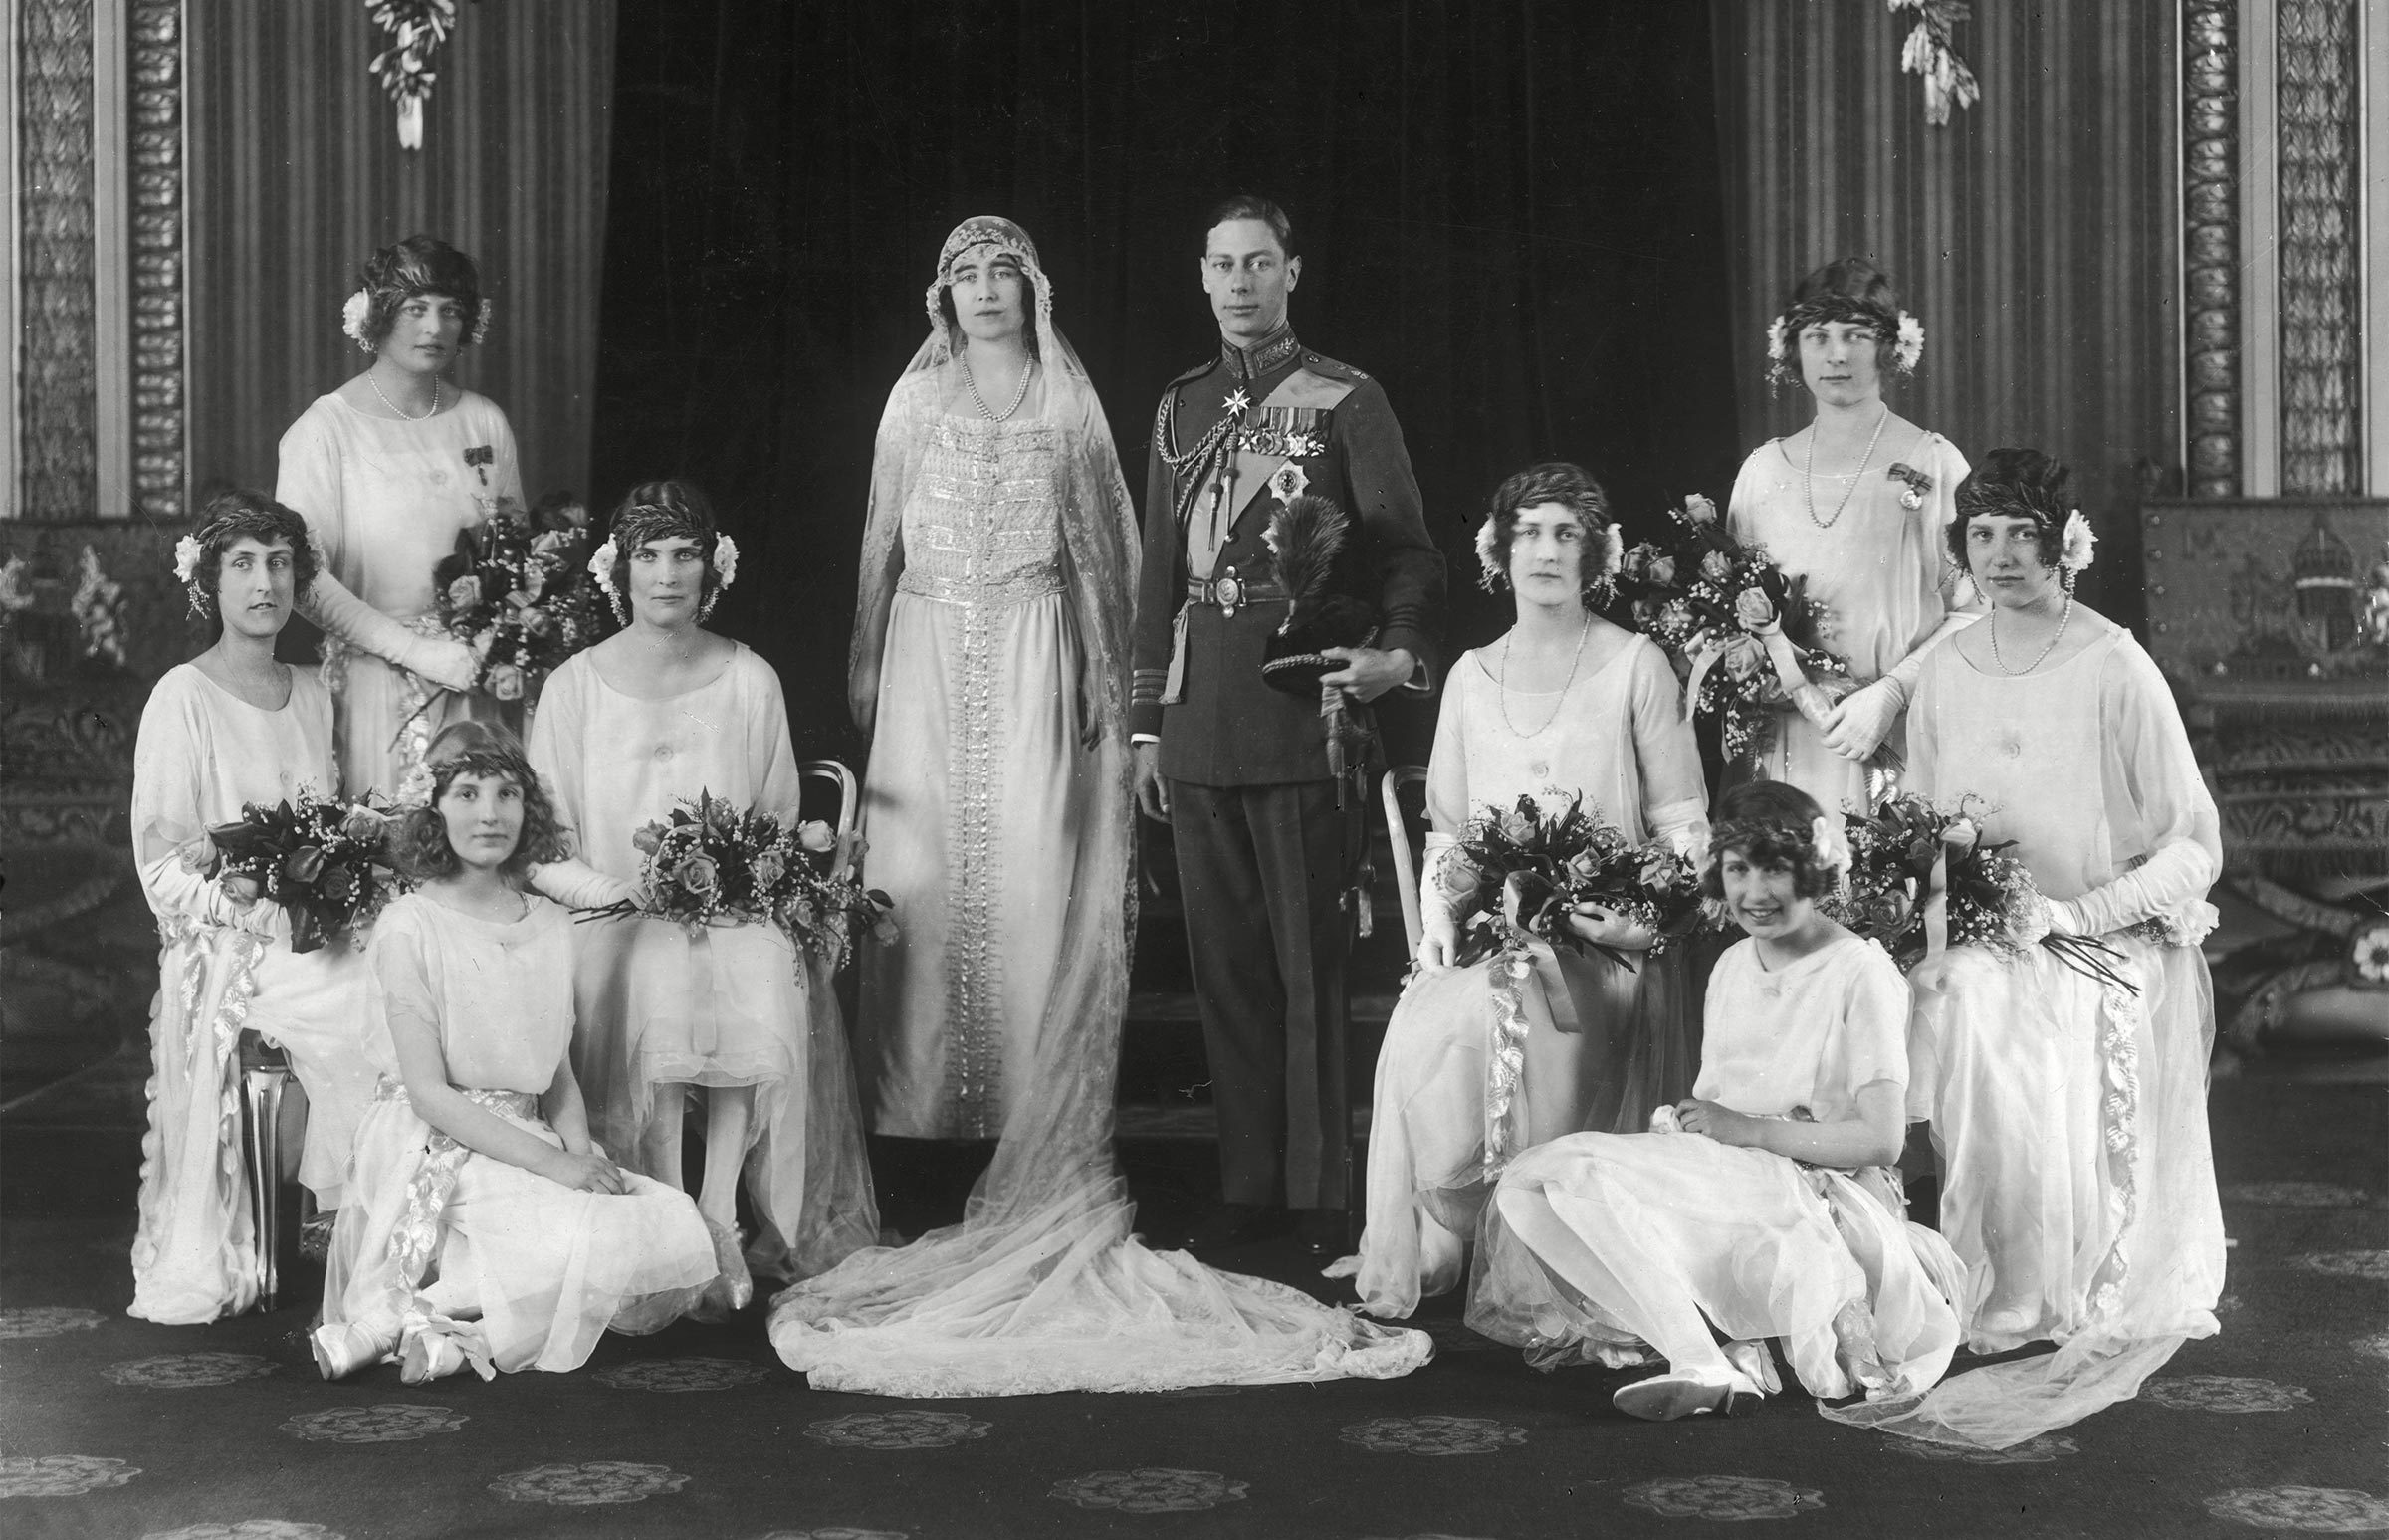 Historical Collection 166 Wedding Group Photograph On the Occasion of the Marriage of Lady Elizabeth Bowes-lyons (later Duchess of York Queen Elizabeth and the Queen Mother) to Albert Duke of York On 26th April 1923 at Westminster Abbey the Couple Pose with Their Eight Bridesmaids the Bride's Medieval Style Dress Was Designed by Madame Handley-seymour 1923